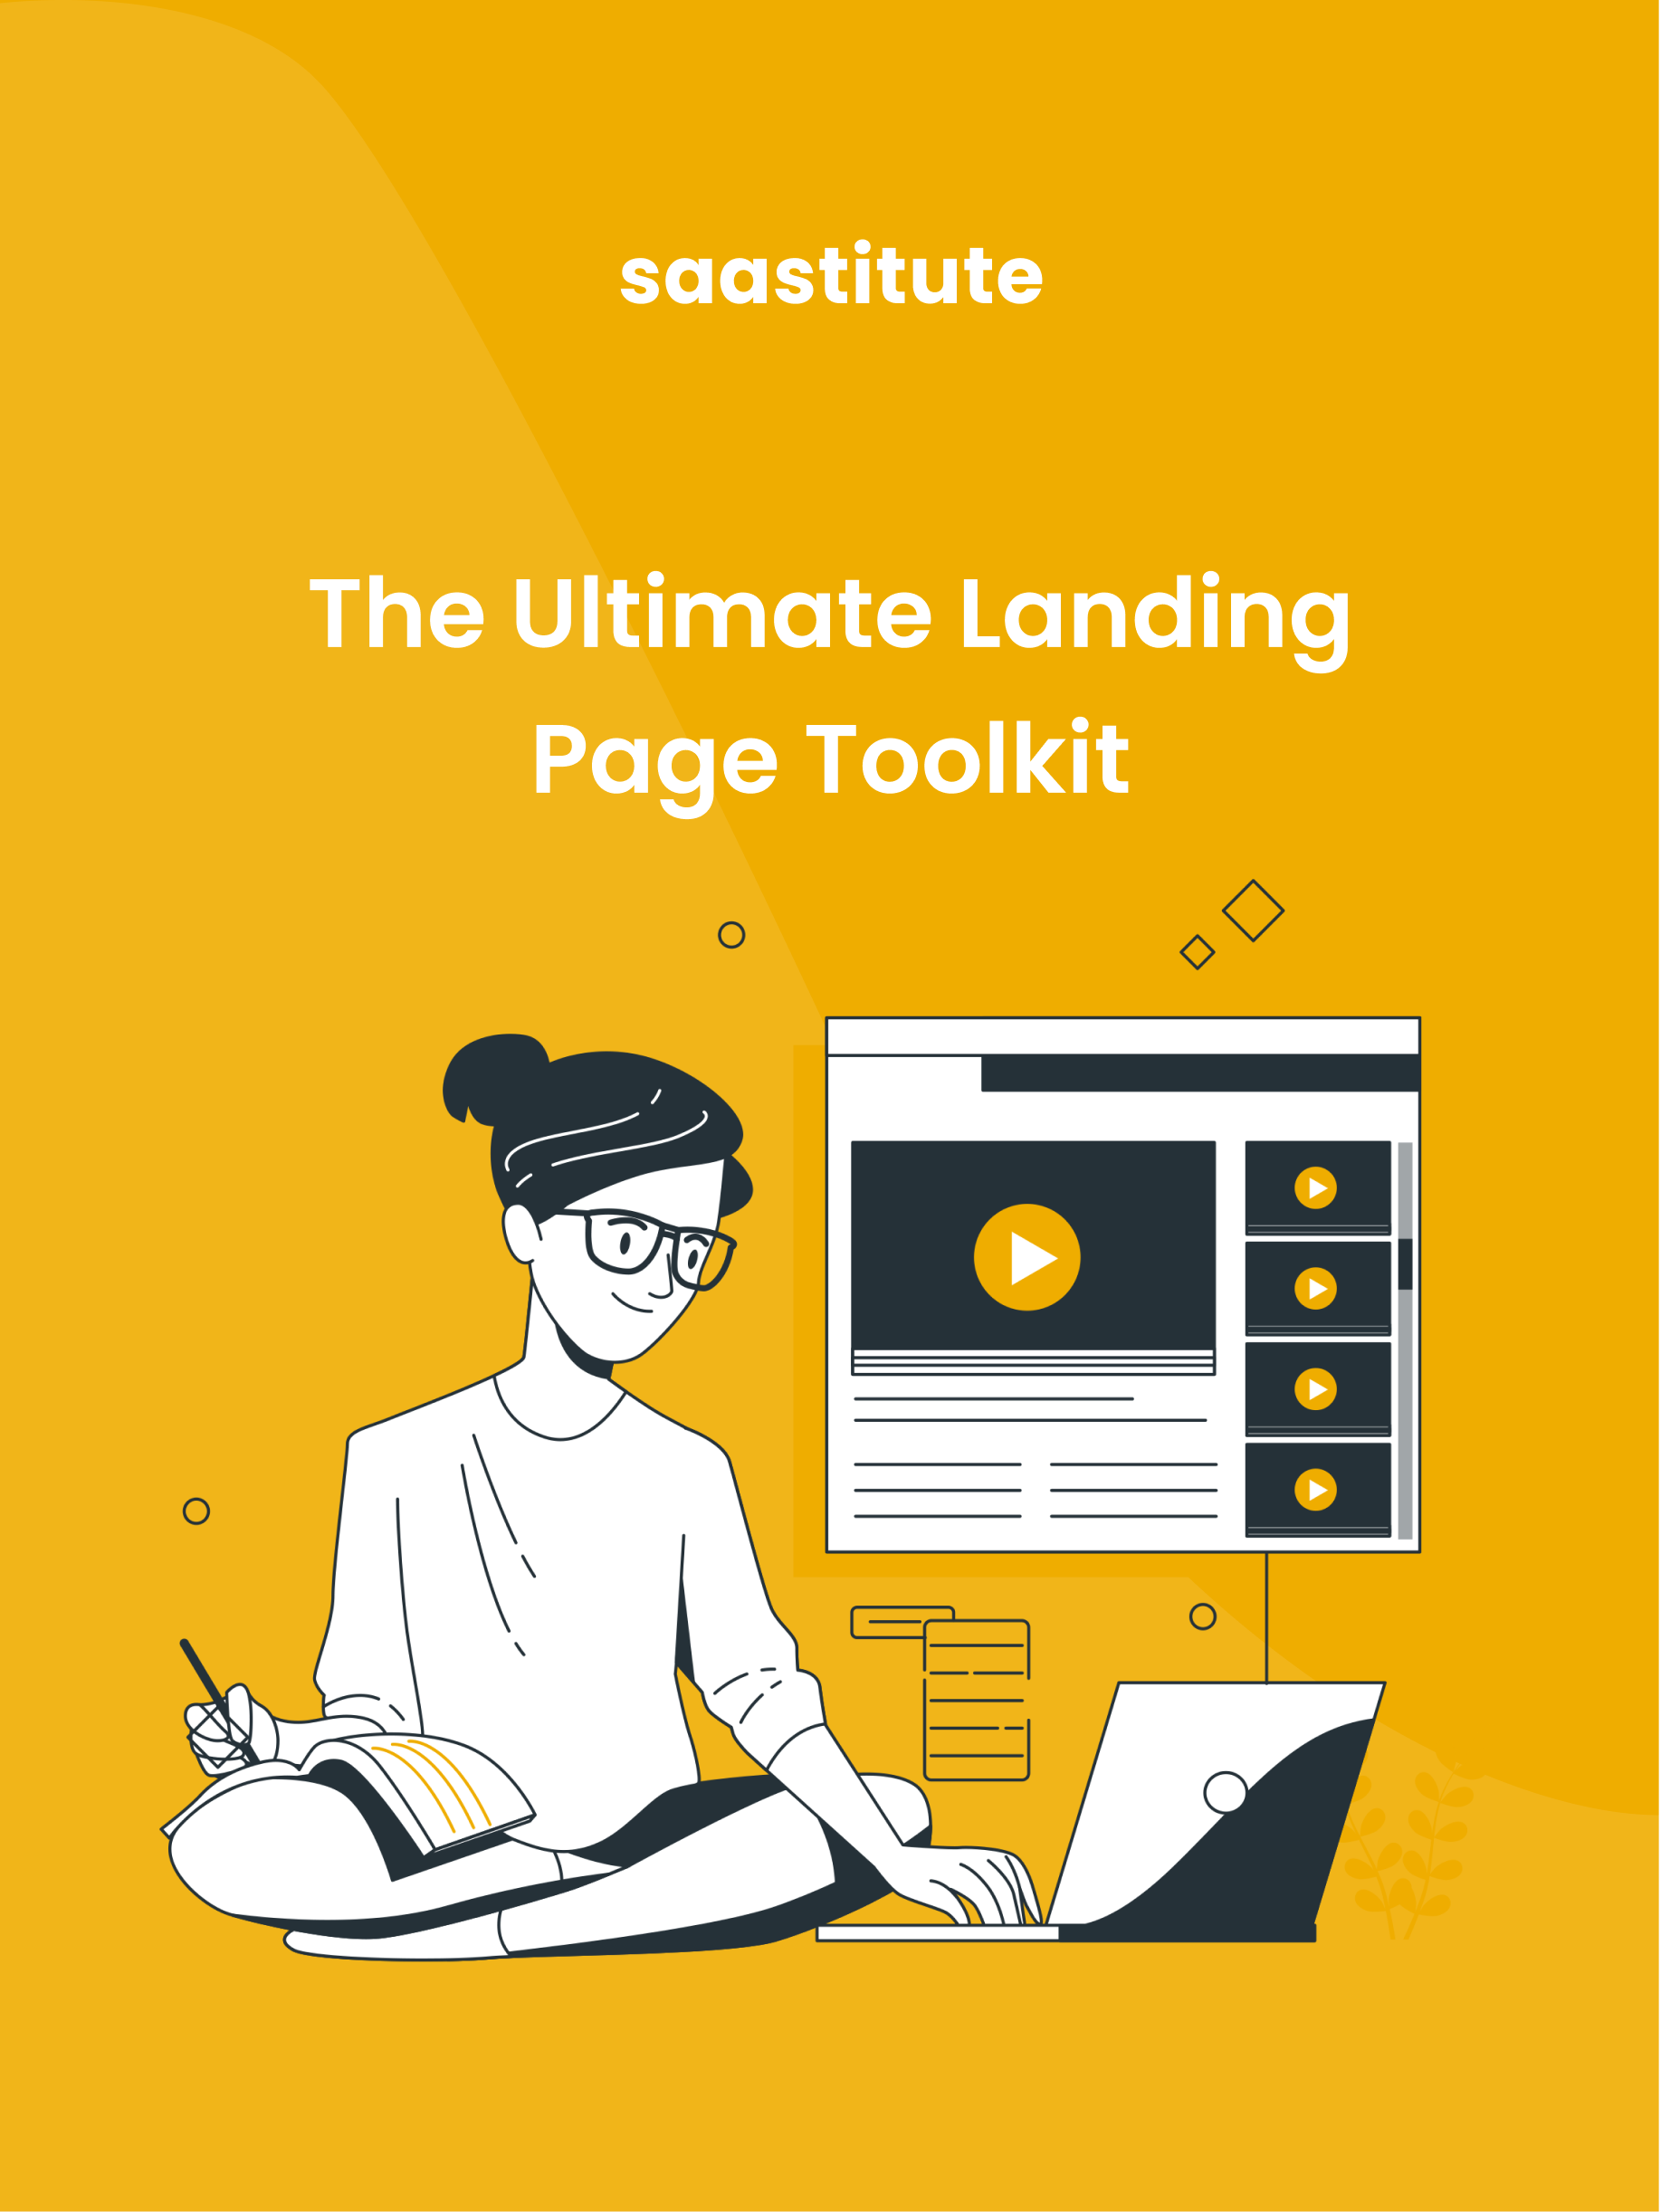 The Ultimate Landing Page Toolkit